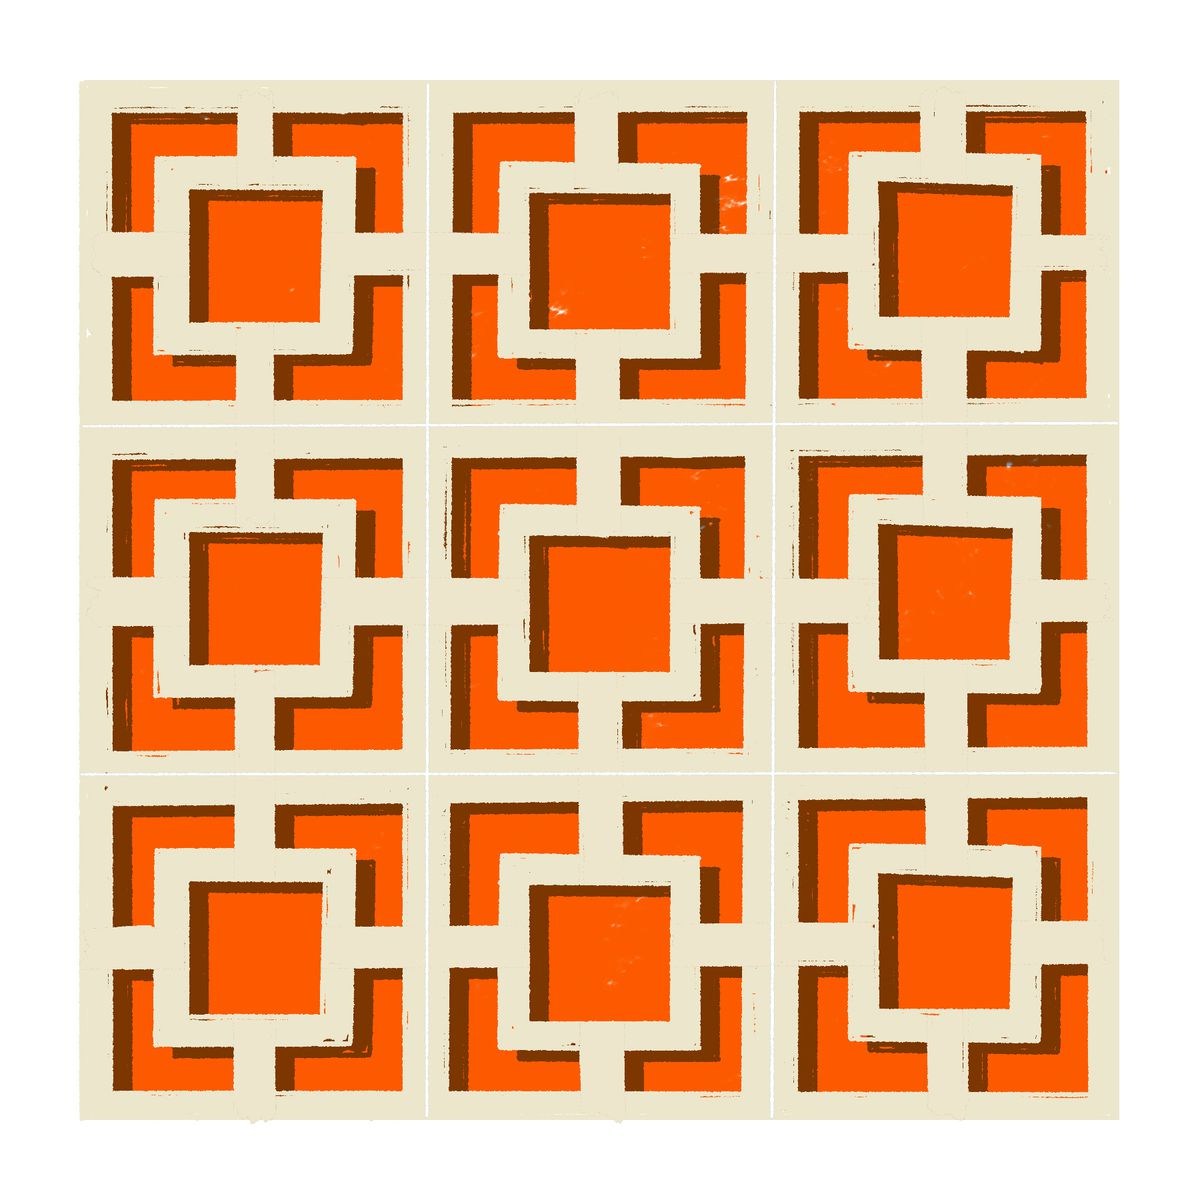 A 3x3 grid of square frames with smaller squares centered inside. Each smaller square is bisected in the horizontally and vertically by straight lines, though the inside of the smaller square remains hollow. Illustration.